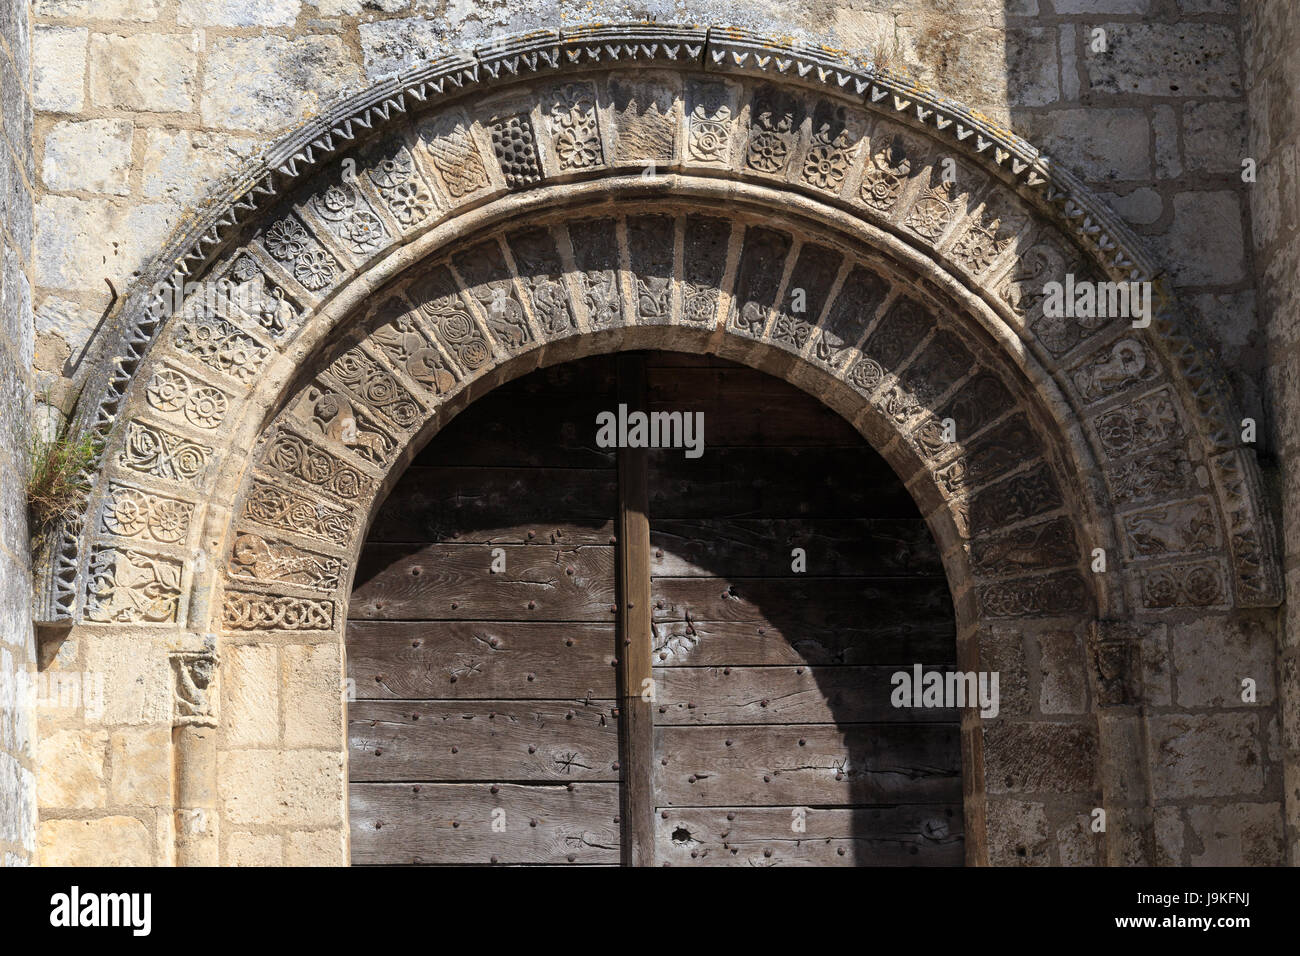 France, Indre, Saint Marcel, the church, the portal - Stock Image